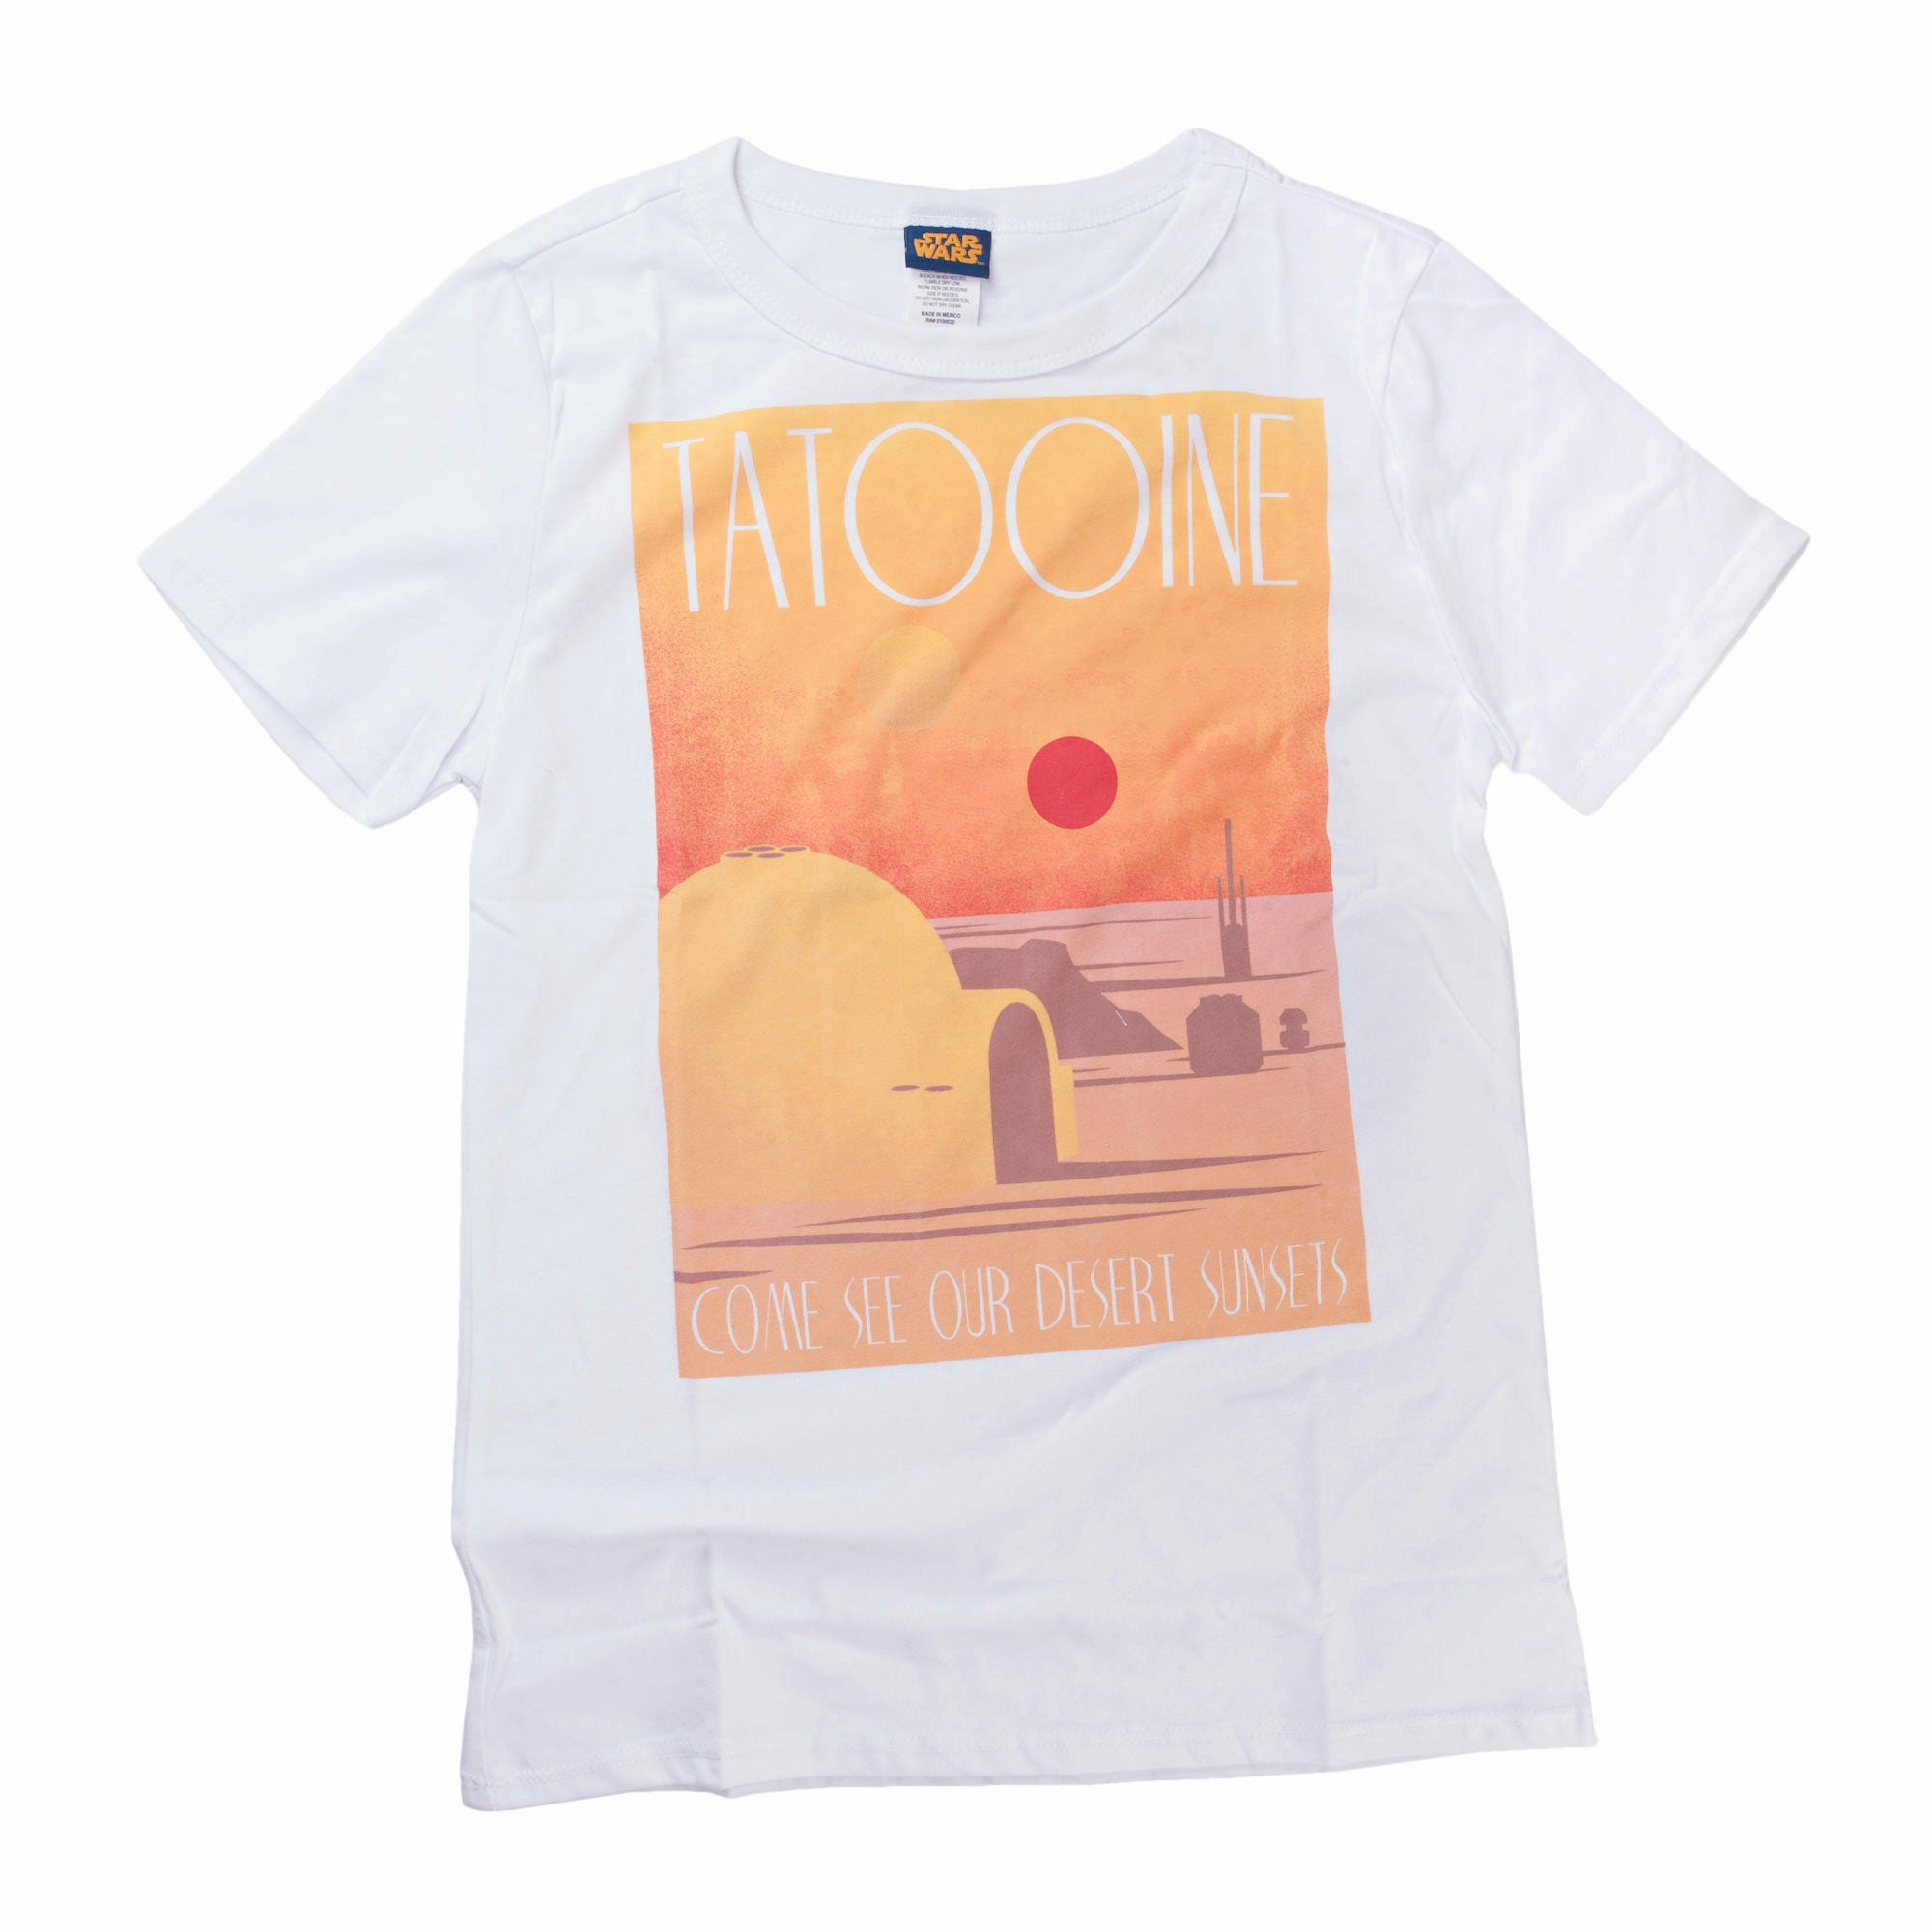 Star Wars Tatooine Desert Juniors White T-Shirt